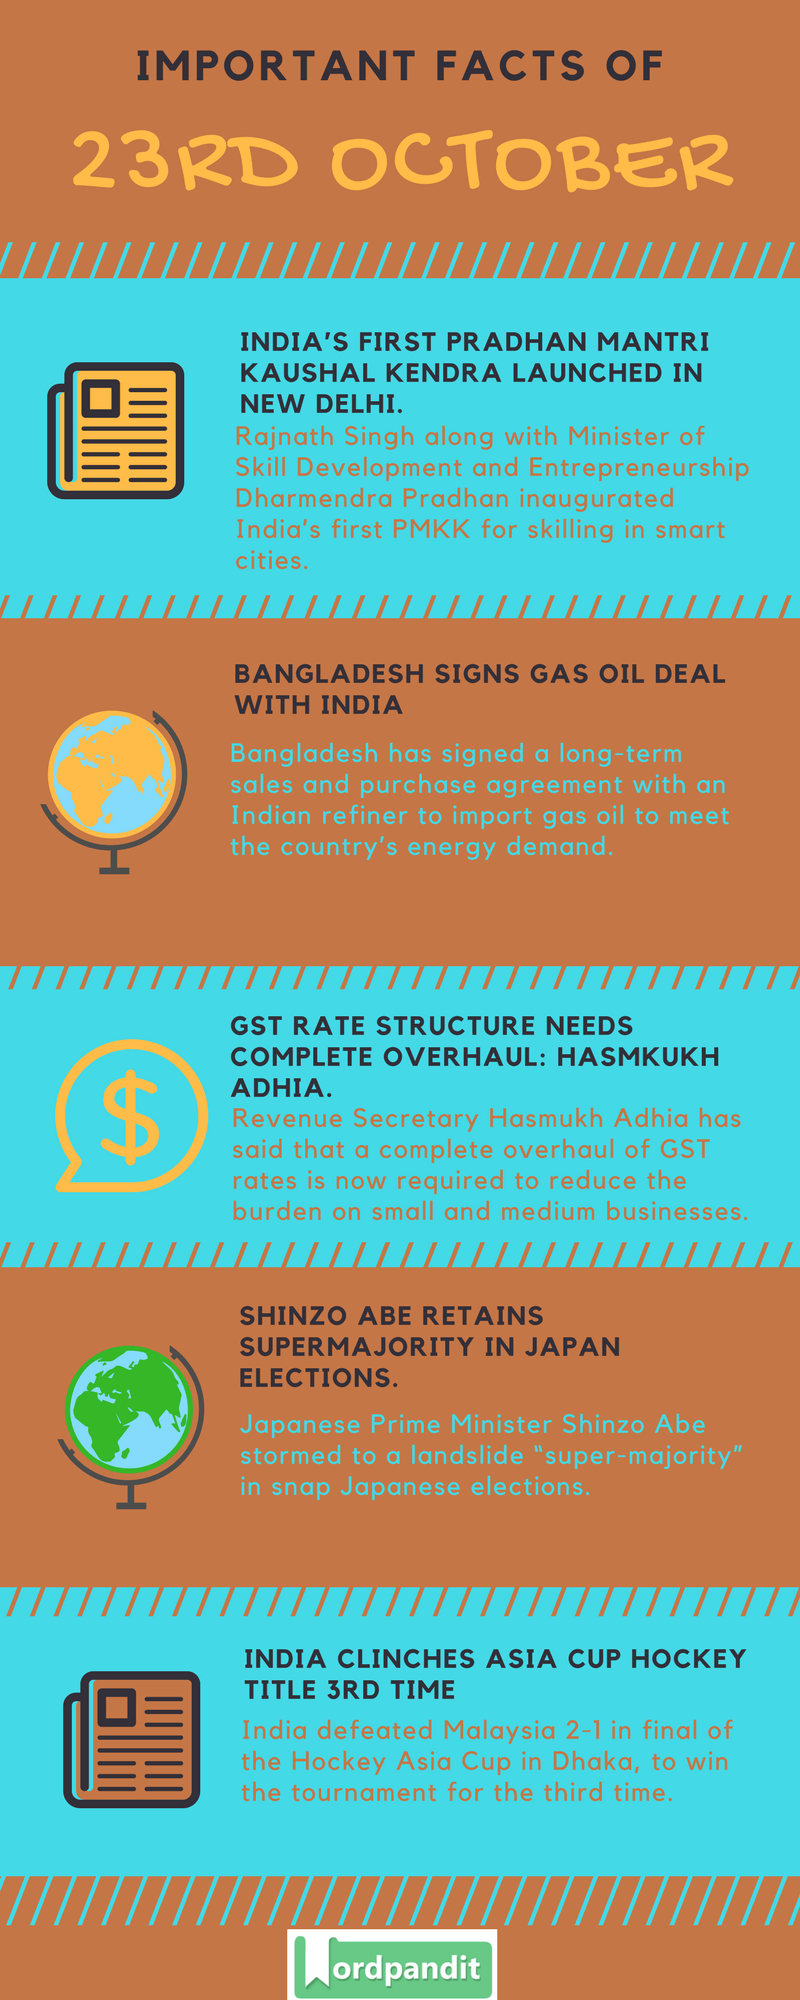 Daily-Current-Affairs-23-october-2017-Current-Affairs-Quiz-october-23-2017-Current-Affairs-Infographic